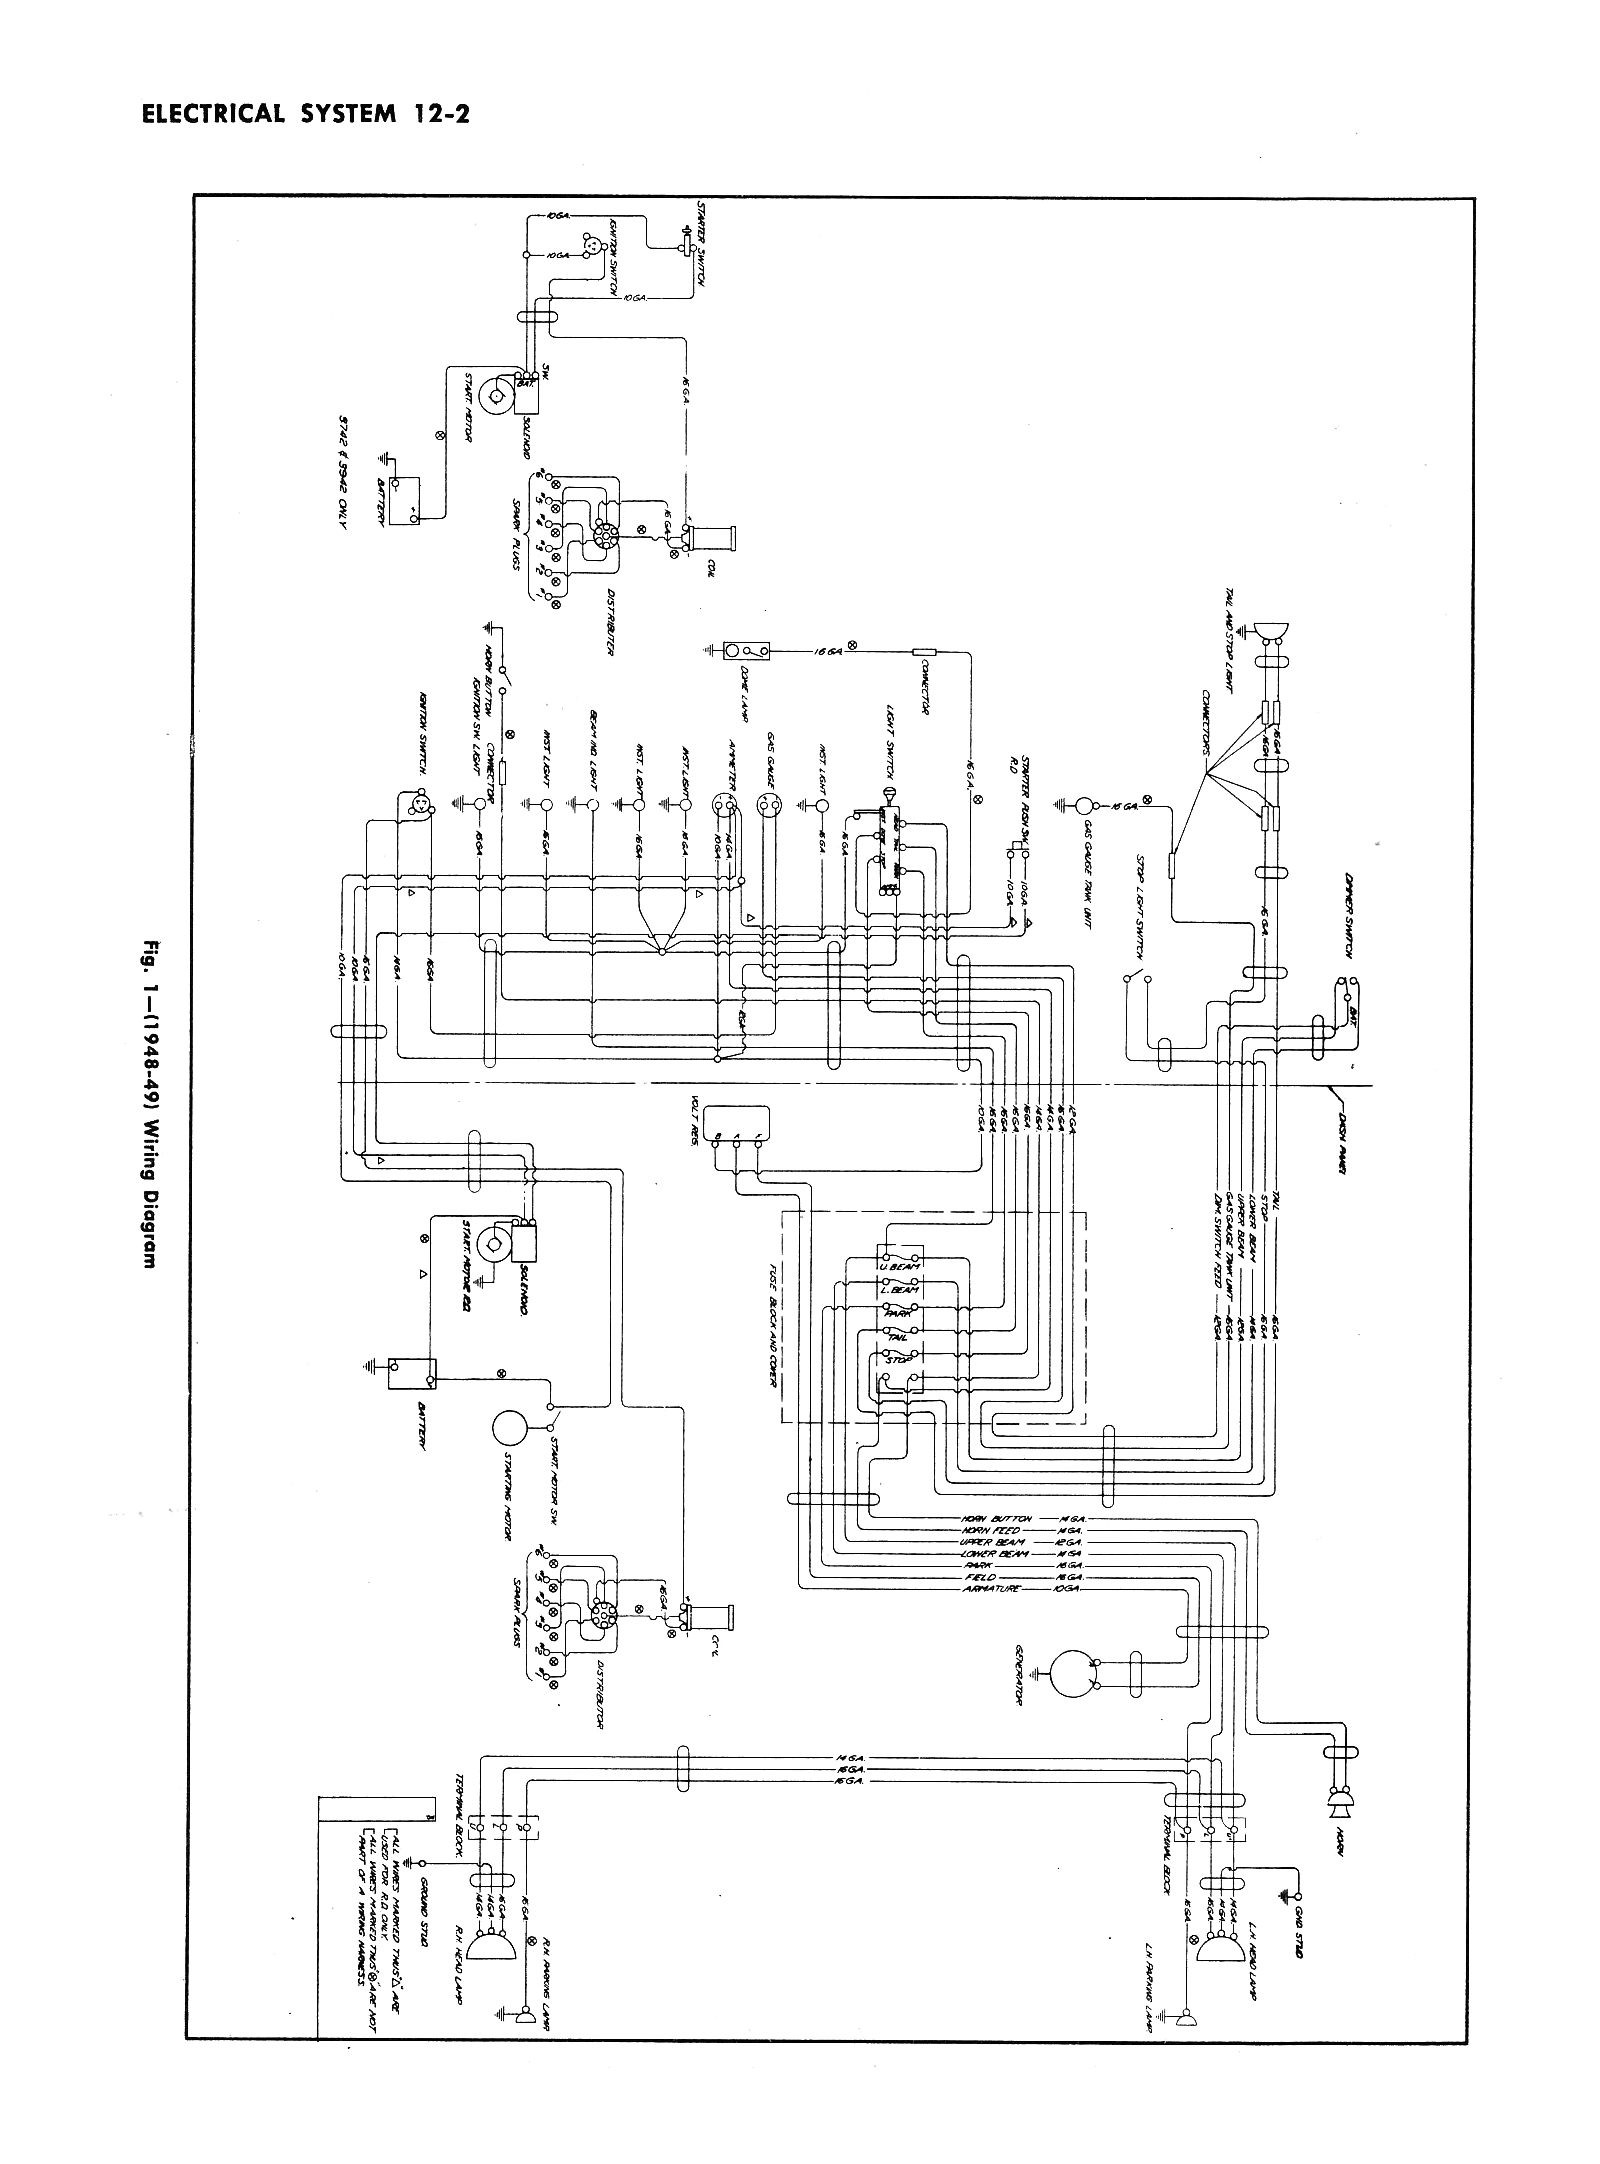 2006 scion xa headlight wiring diagram bmw m6 wiring